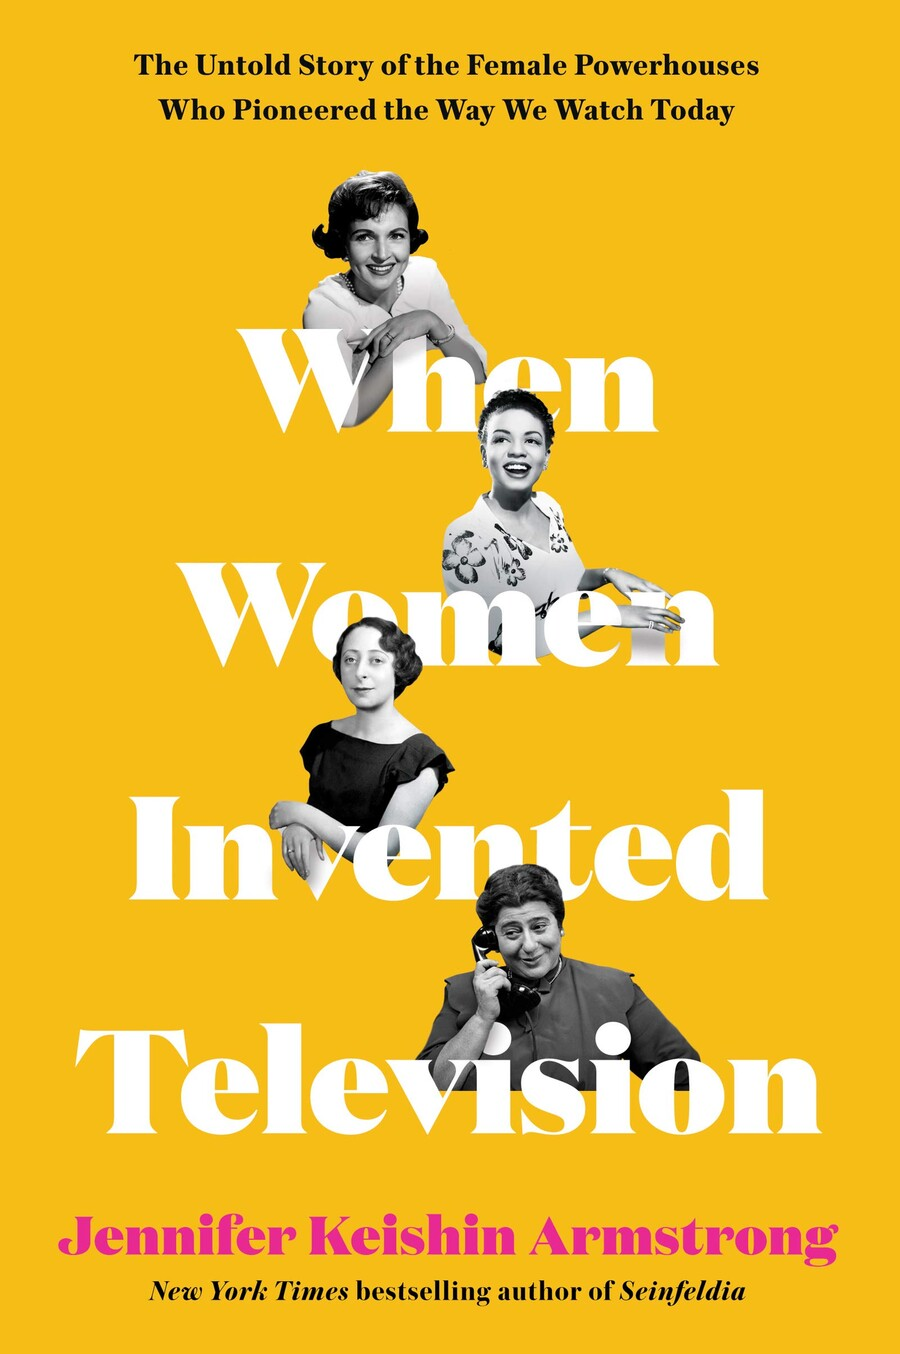 The yellow book cover of When Women Invented Television: The Untold Story of the Female Powerhouses Who Pioneered the Way We Watch Today by Jennifer Keishin Armstrong, which features different women who influenced television.